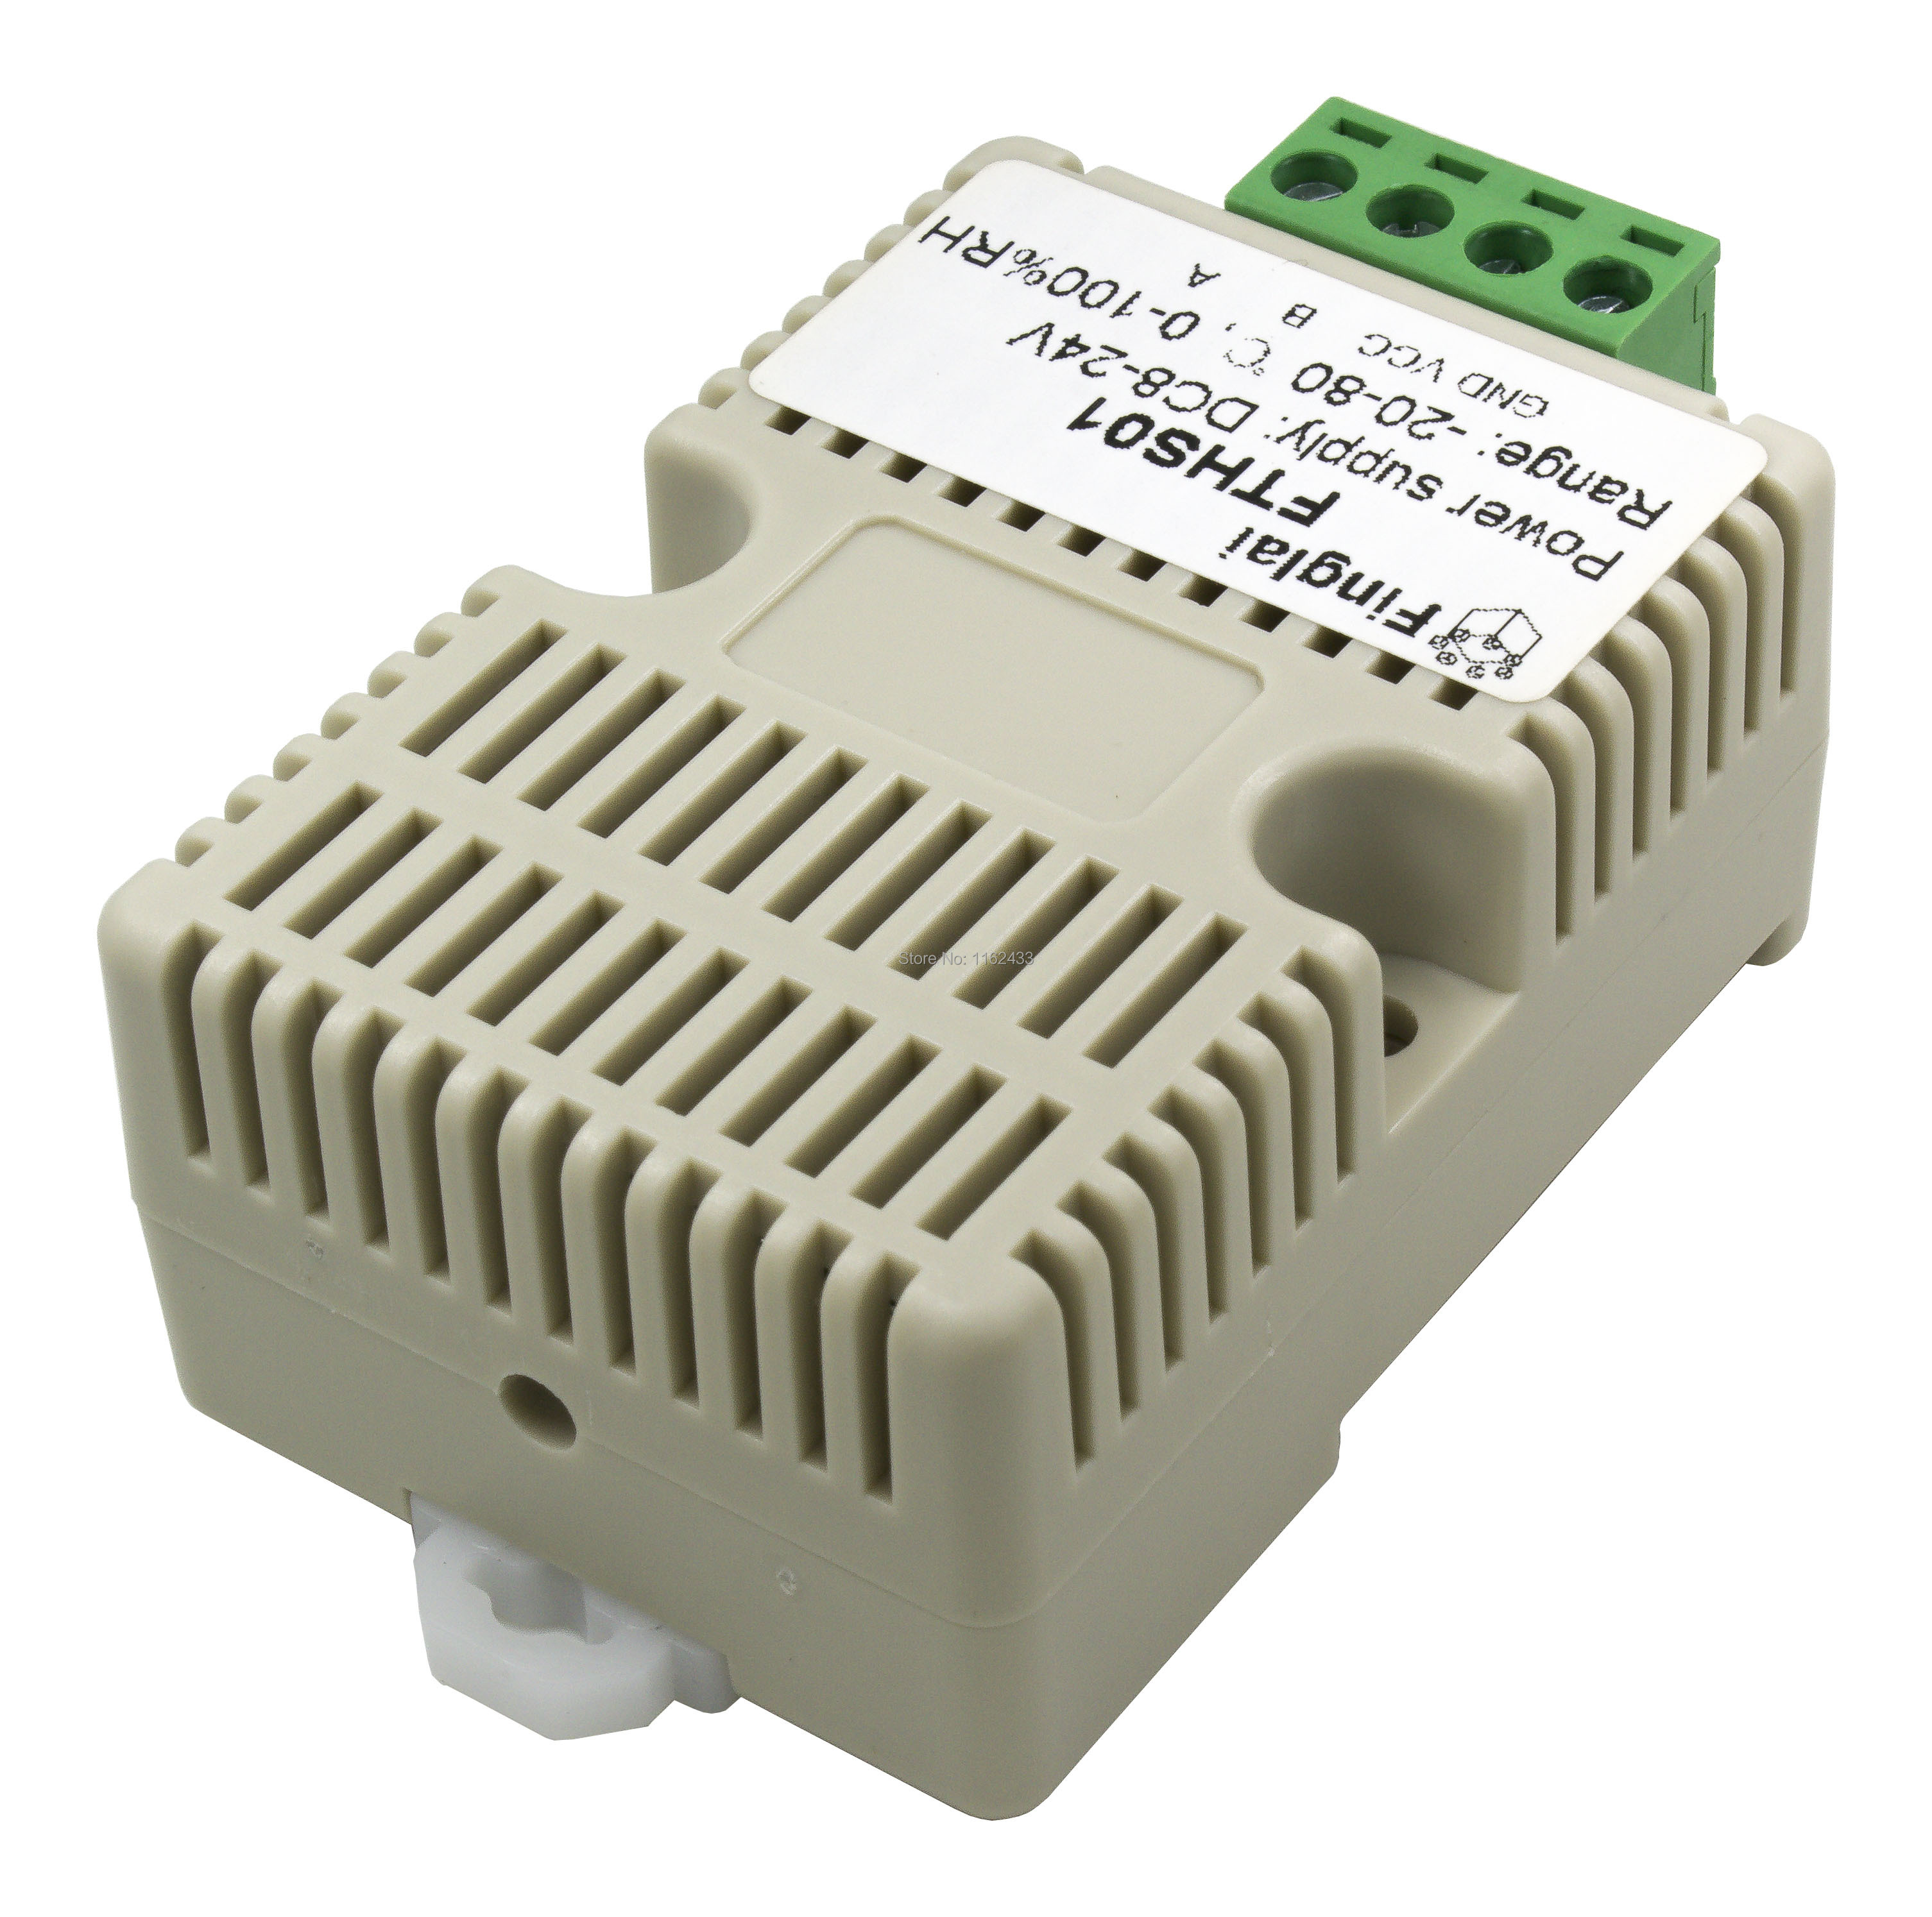 ⃝FTHS01 integrated temperature and humidity sensor